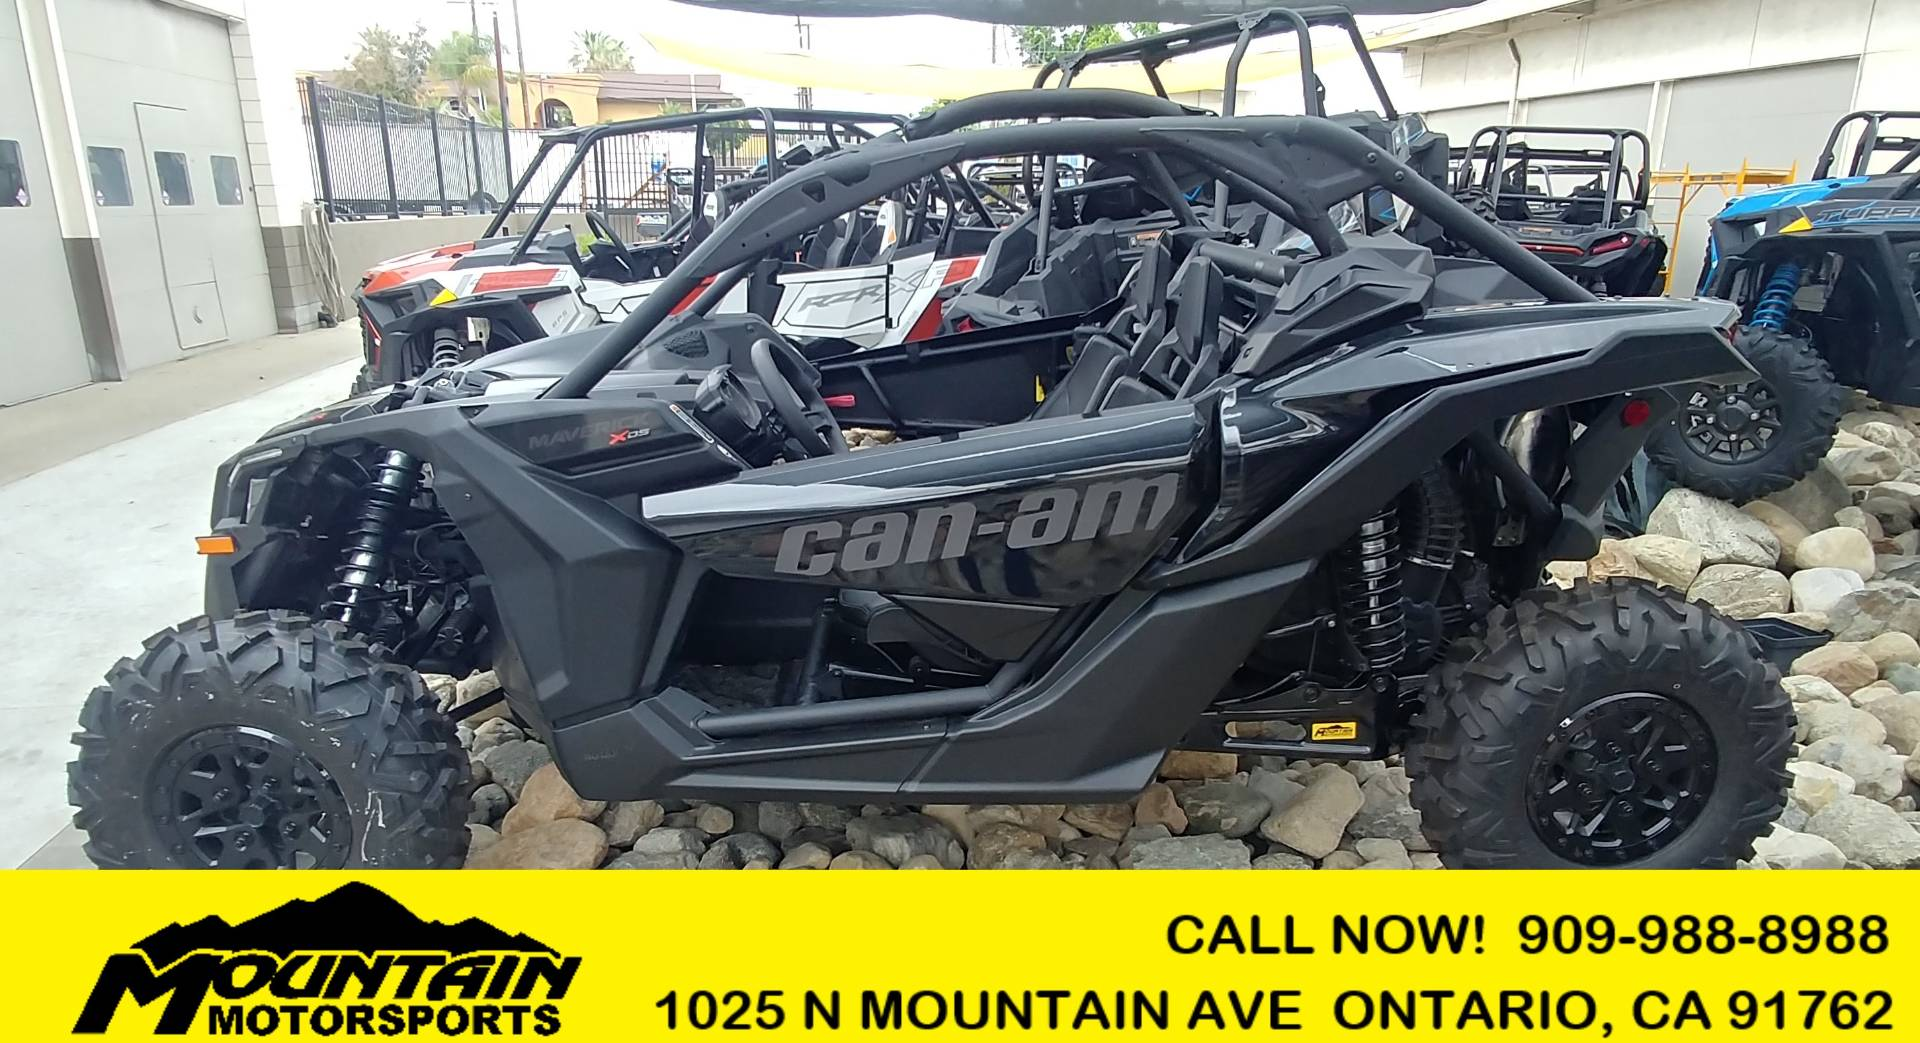 2019 Can-Am Maverick X3 X ds Turbo R for sale 687